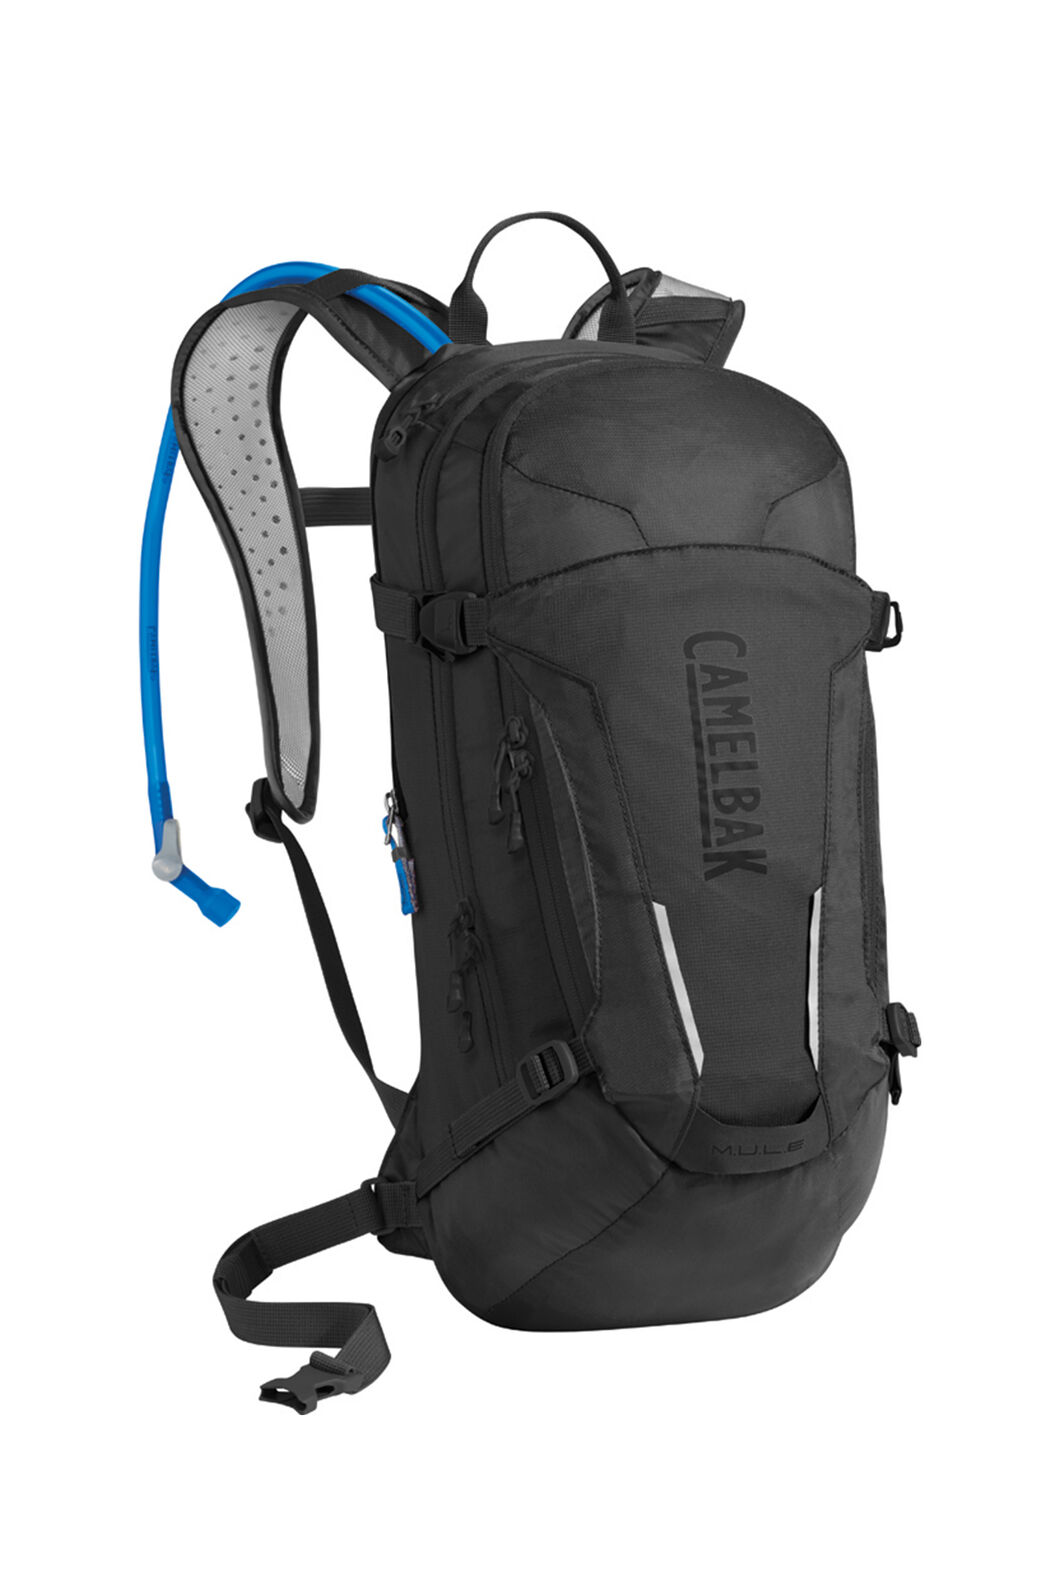 CamelBak Mule Hydration Pack 3L, None, hi-res